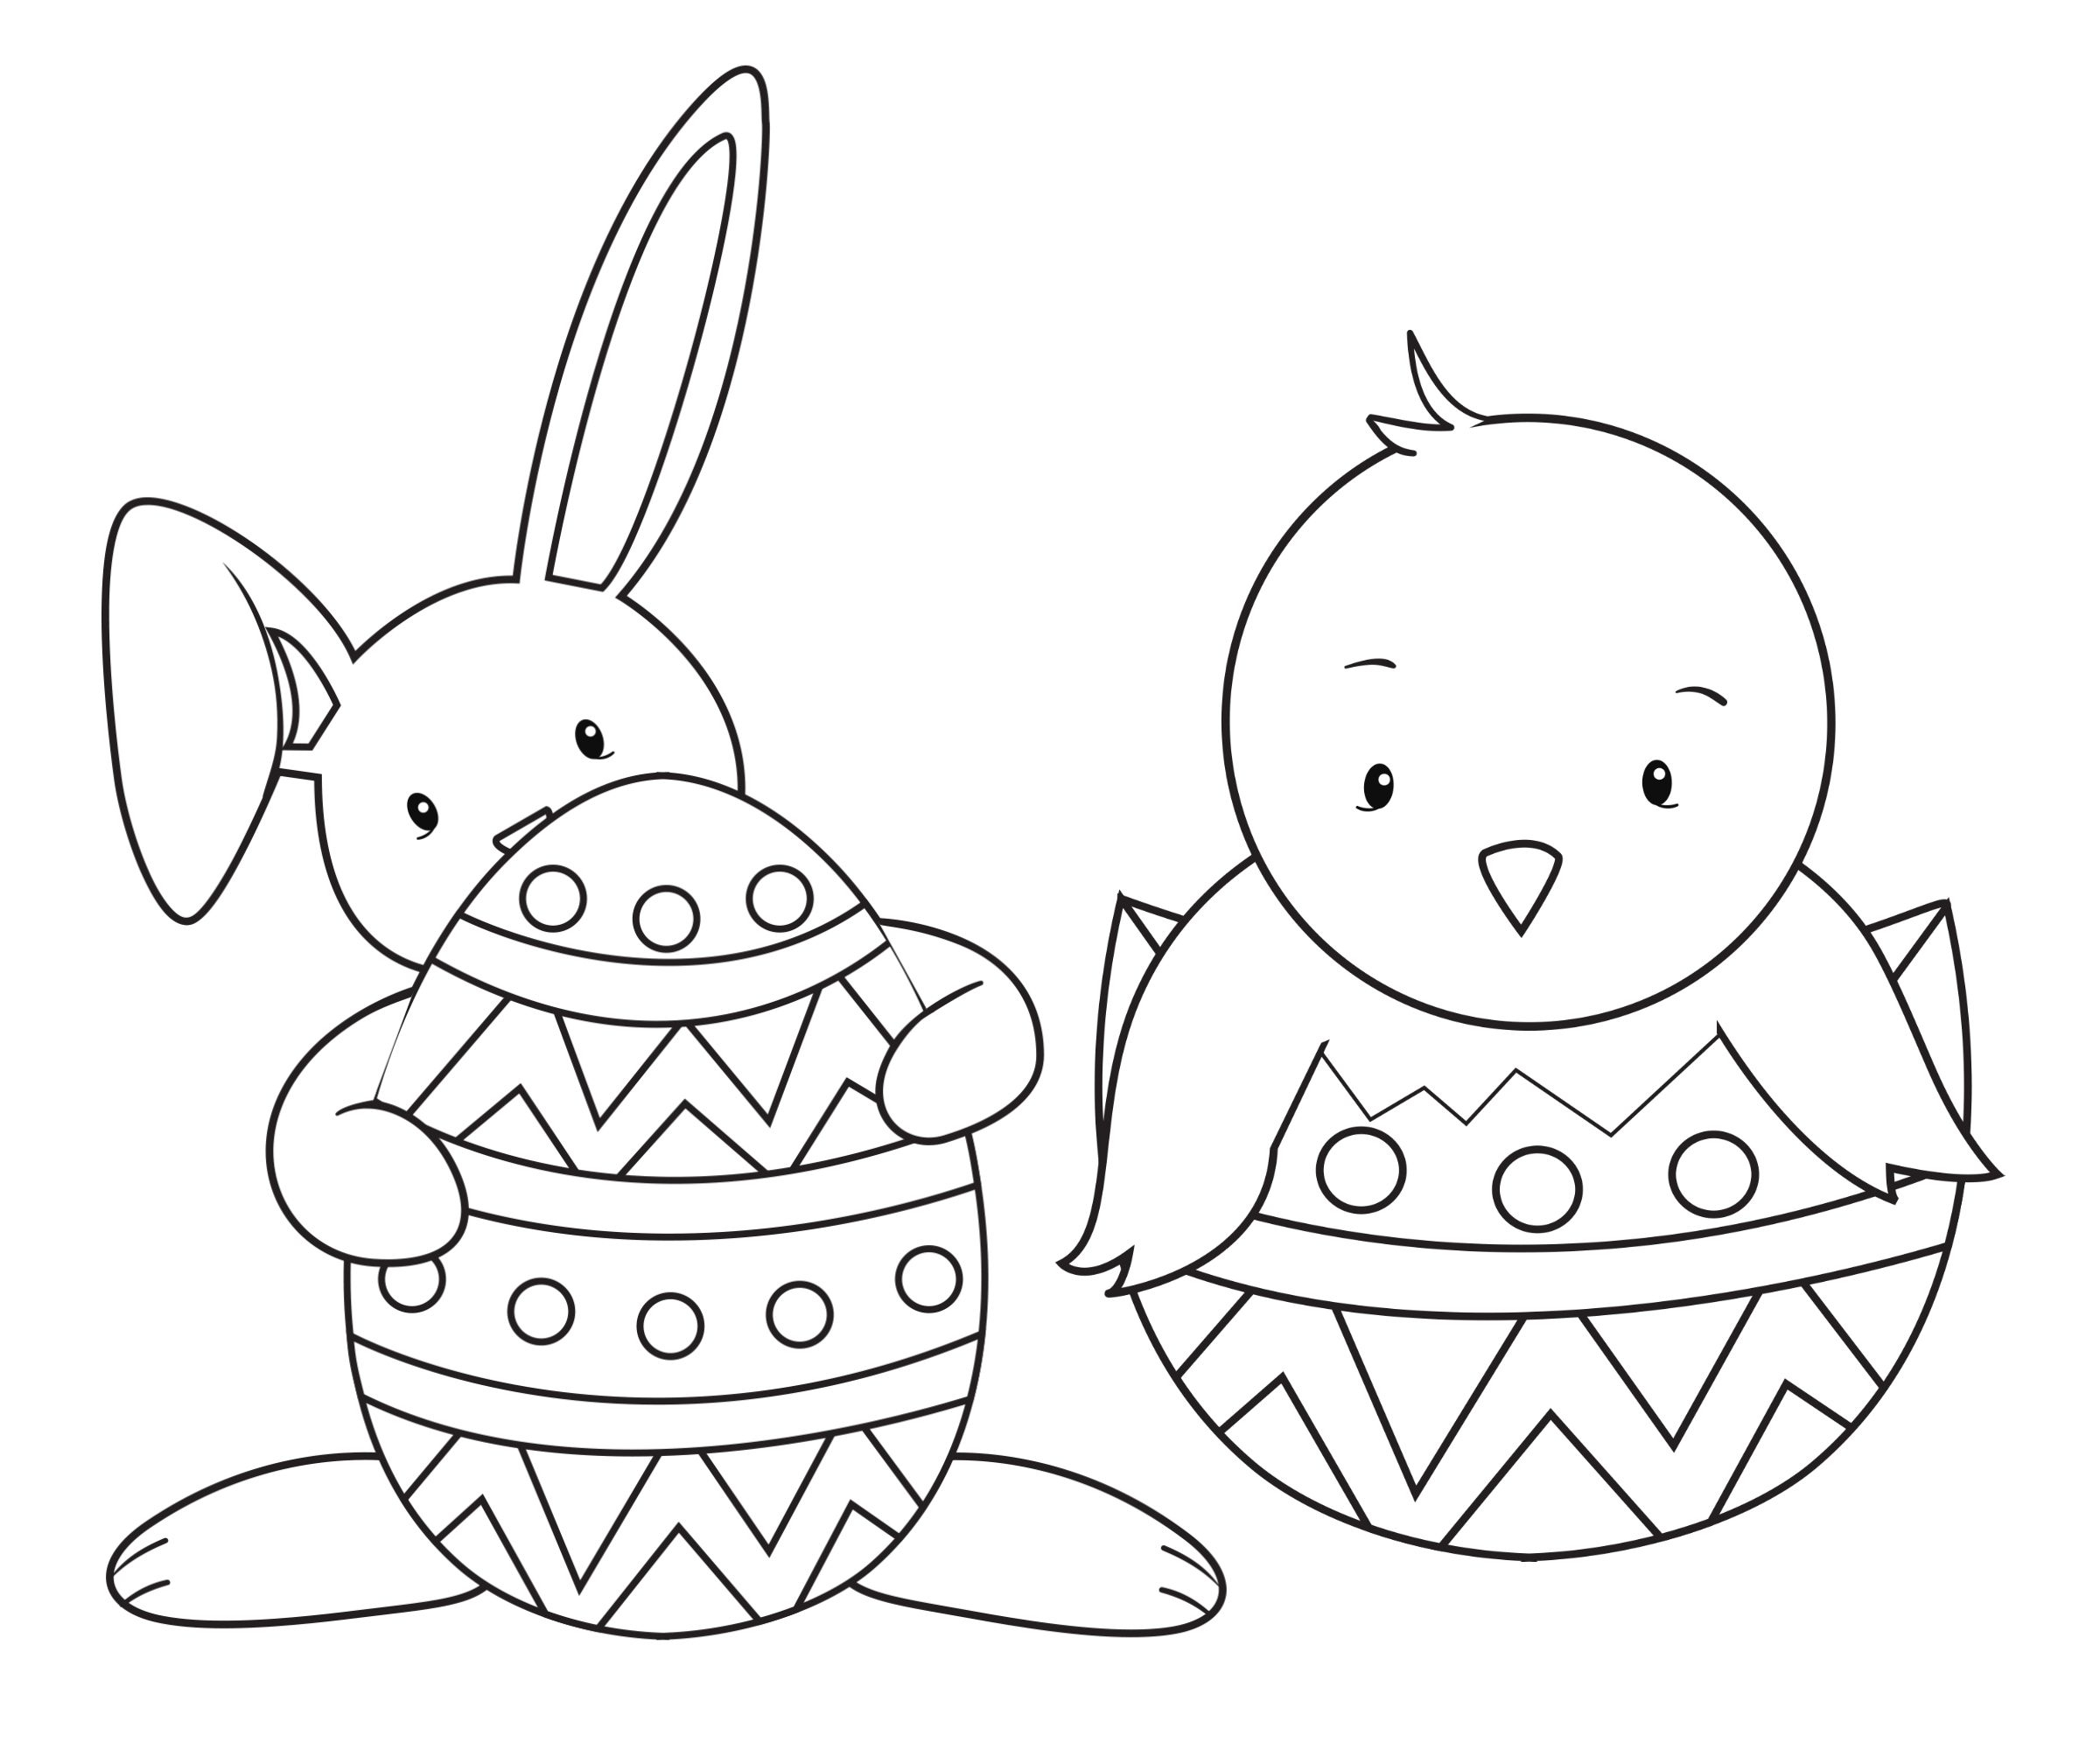 Easter Coloring Pages for Kids to Print Of Easter Basket Coloring Pages to Print Gallery